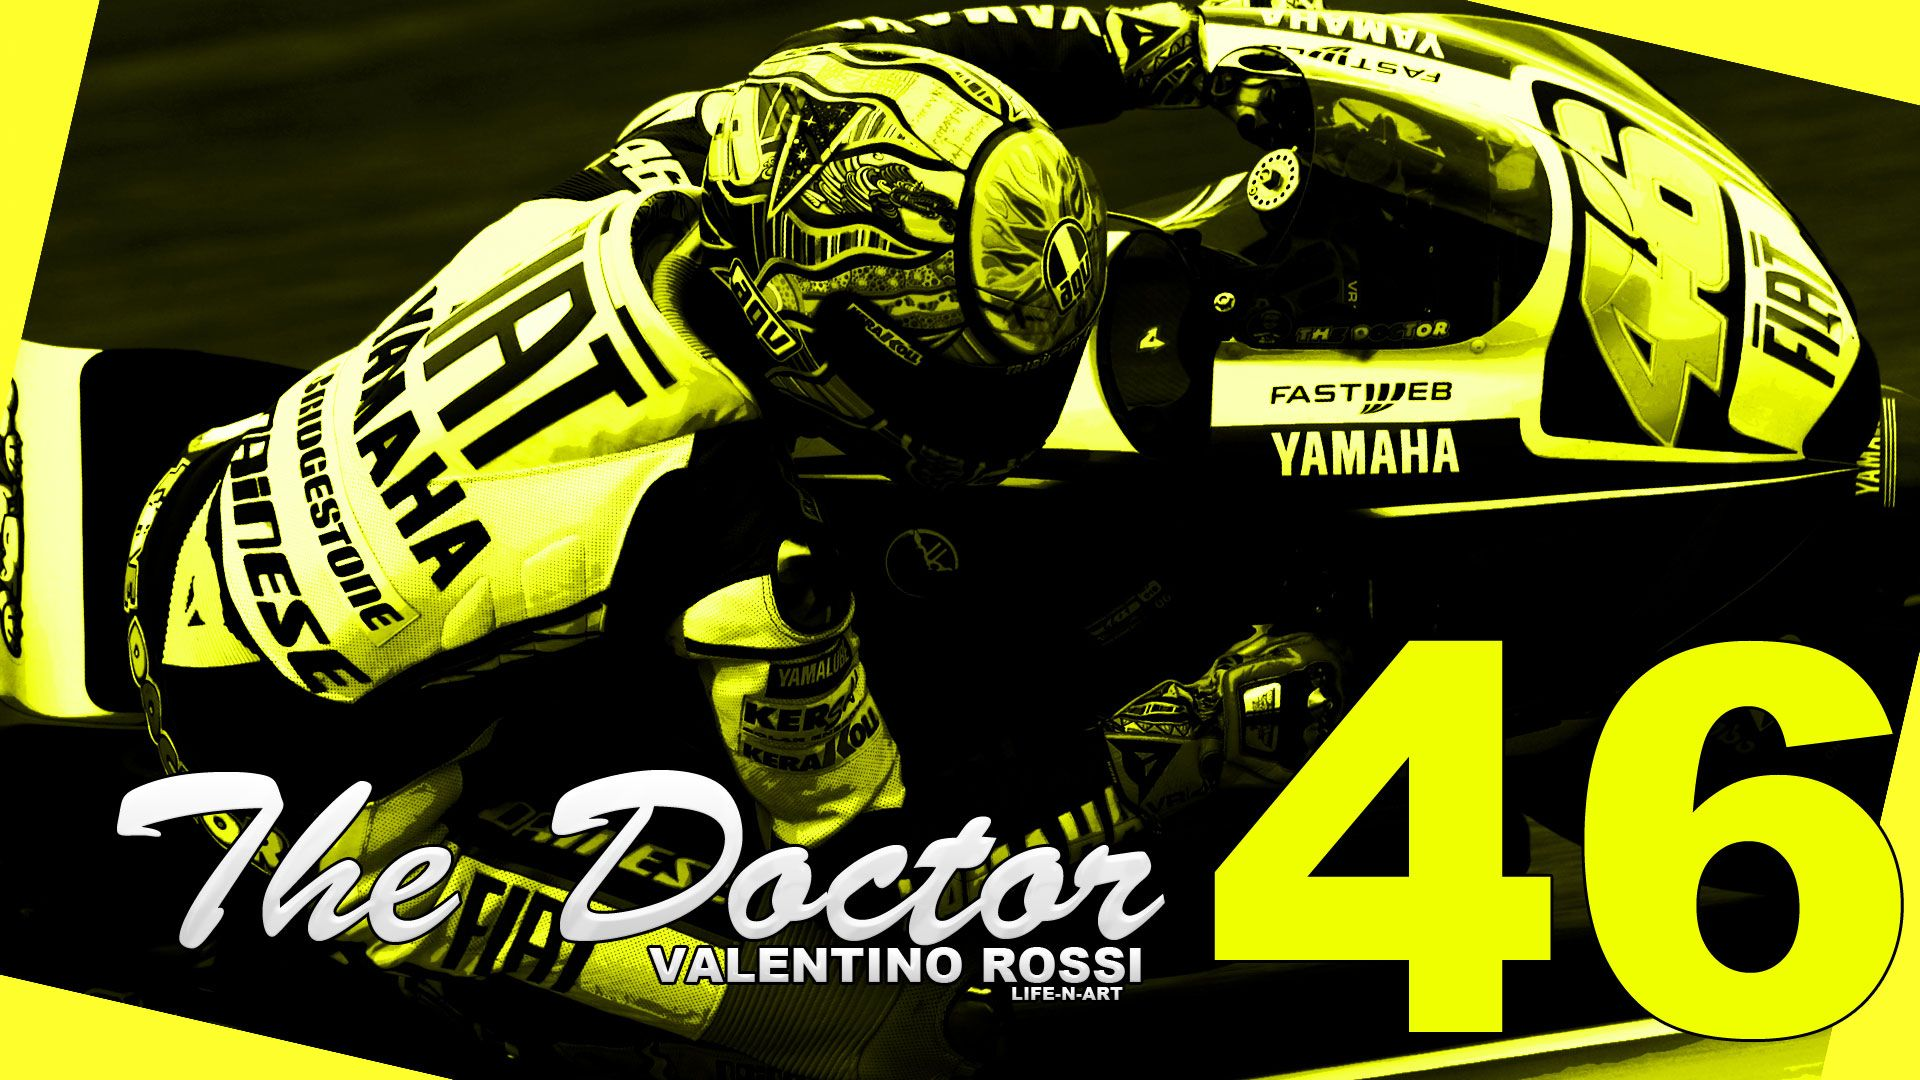 Wallpaper iphone valentino rossi - Valentino Rossi Wallpapers Hd Download 1680 1050 Wallpaper Valentino Rossi 35 Wallpapers Adorable Wallpapers Desktop Pinterest Valentino Rossi And